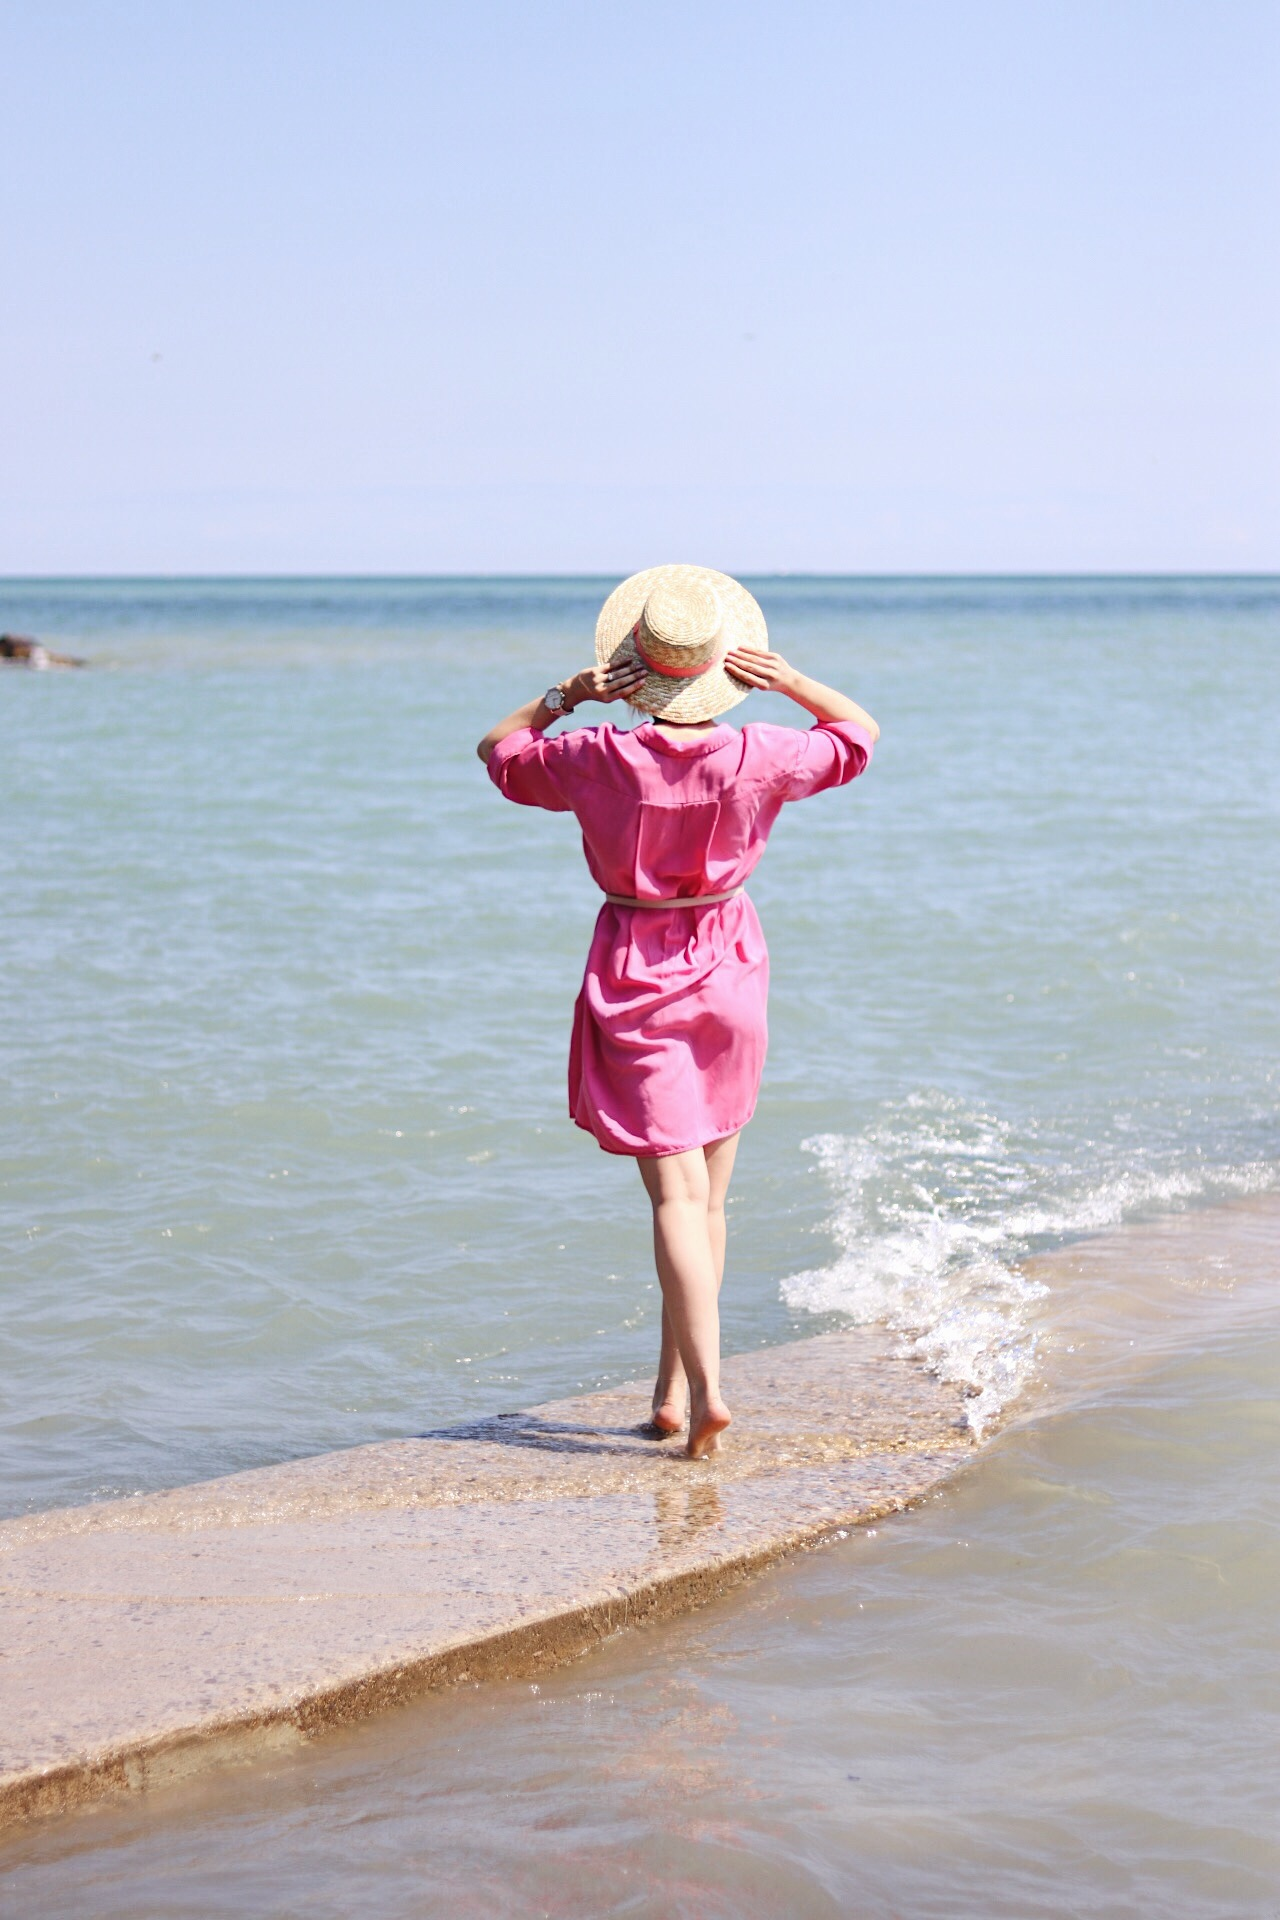 boater hat and shirt dress